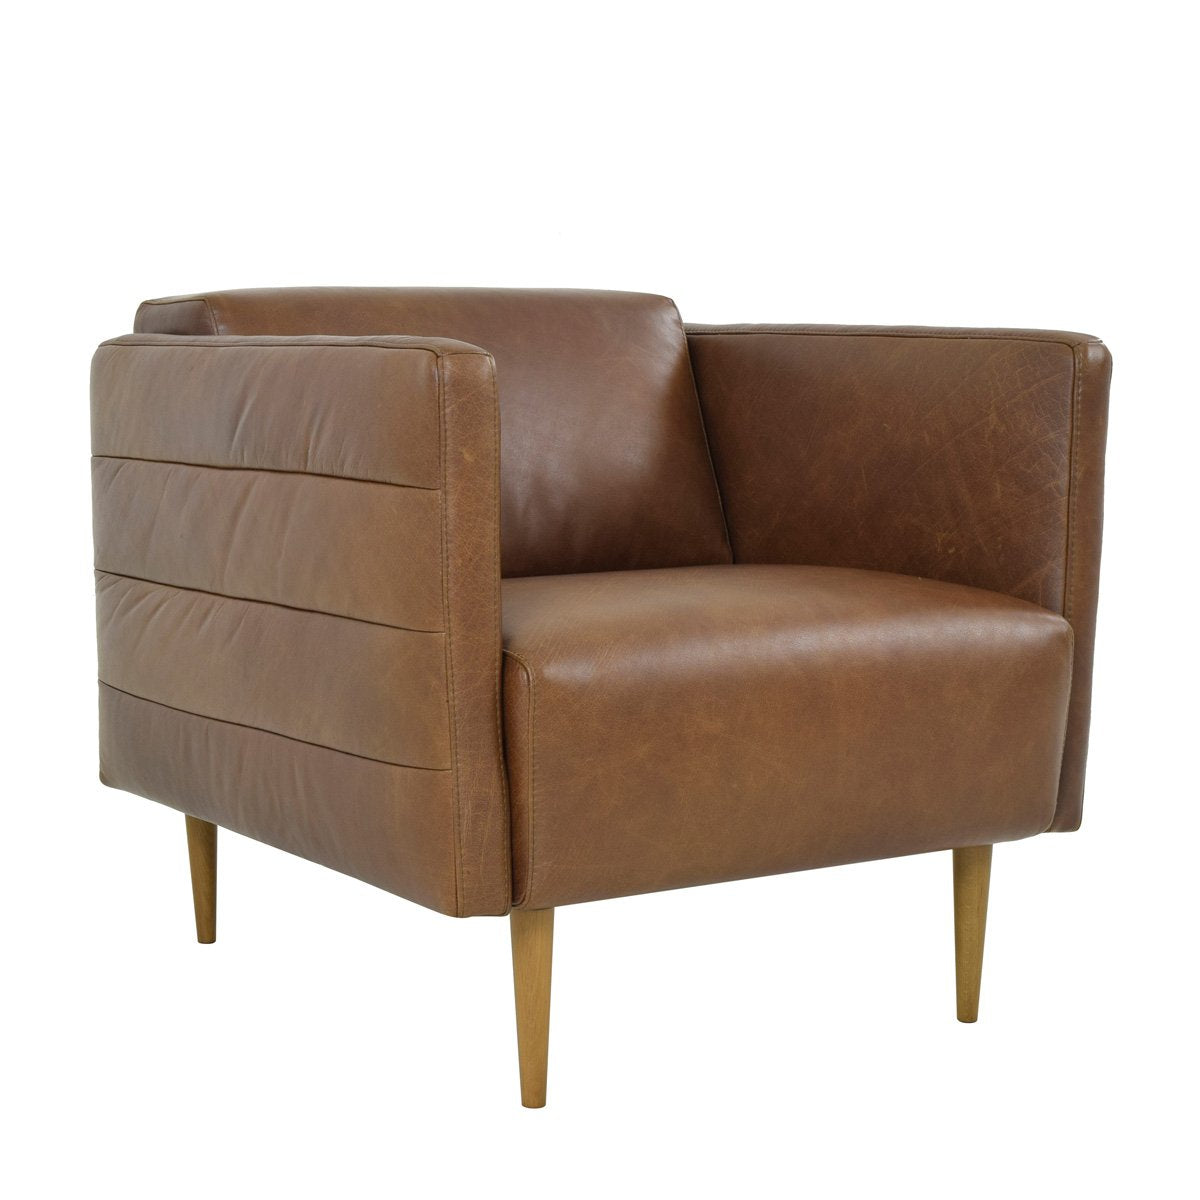 Dublin Club Chair Tobacco